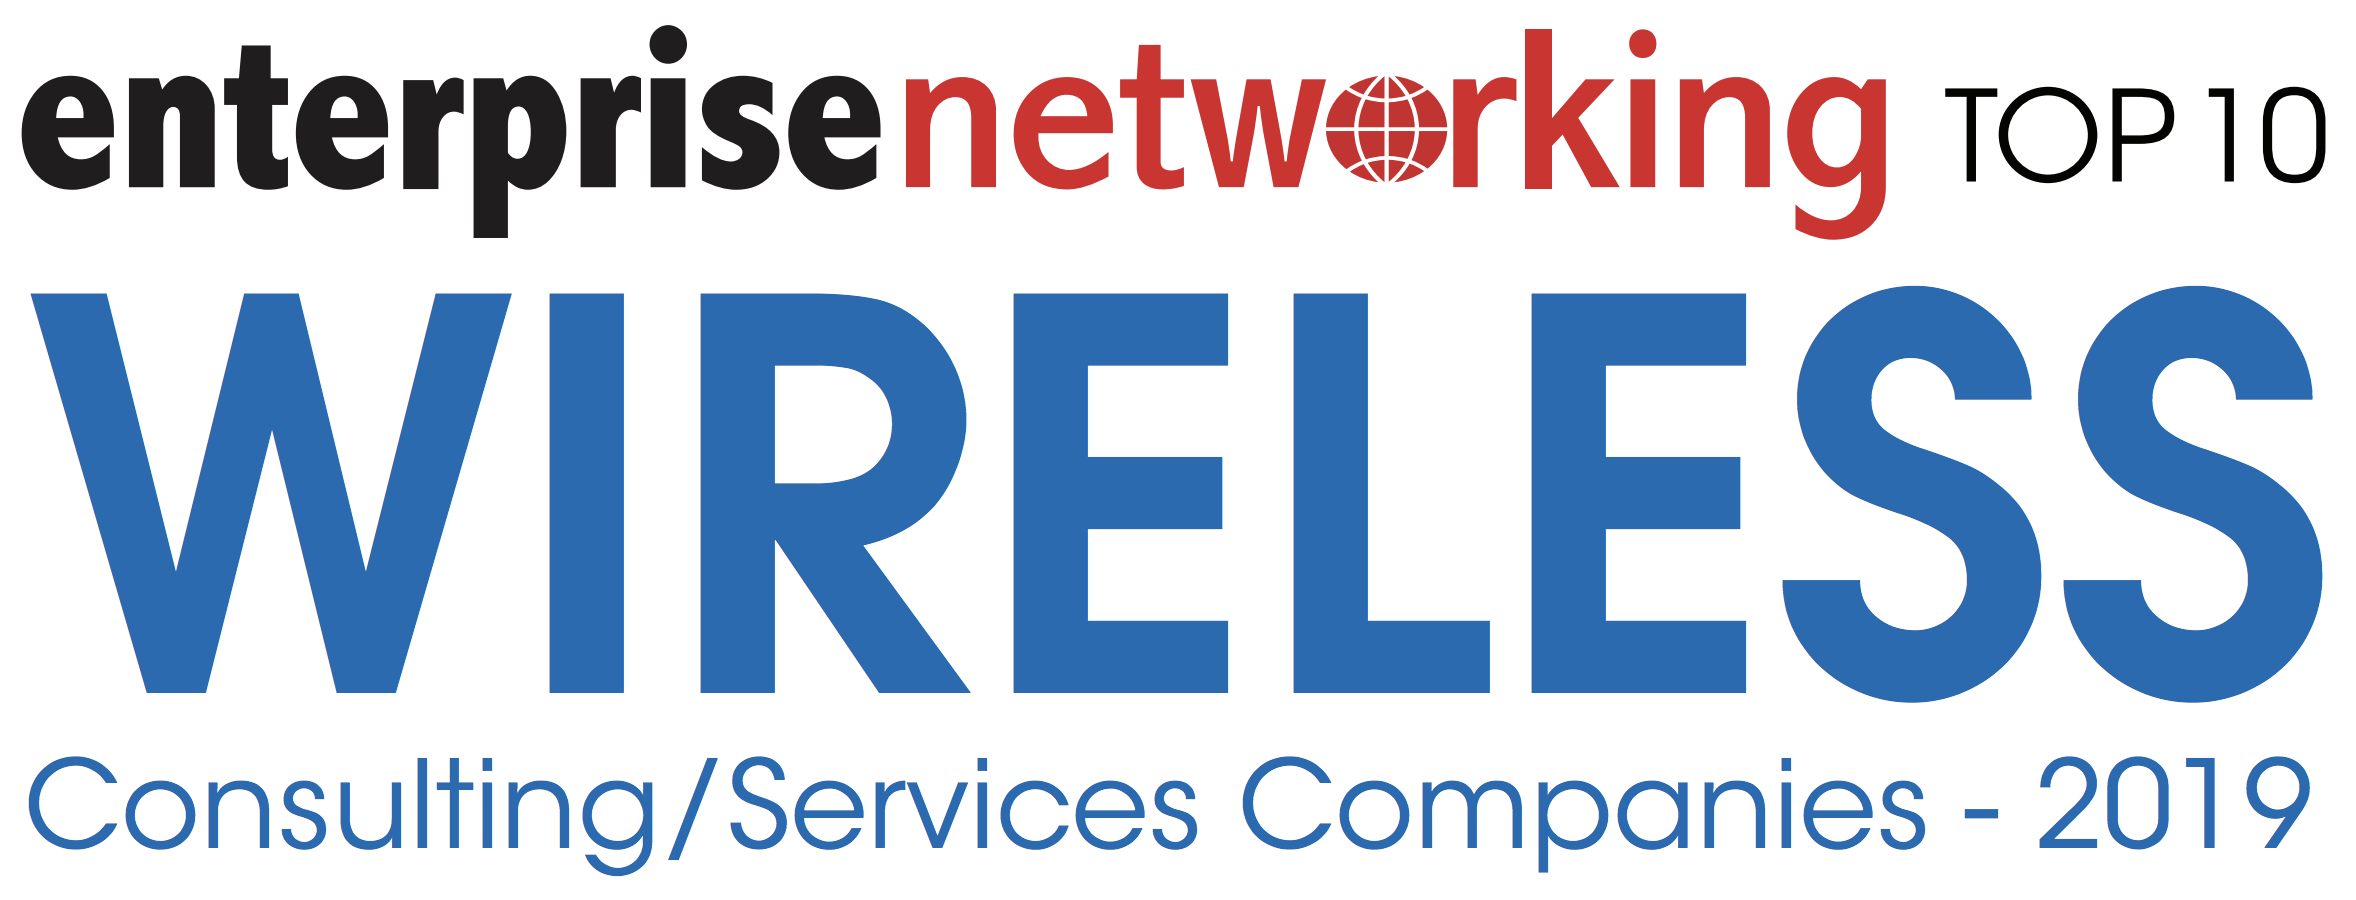 featured in enterprise networking top 10 wireless consulting-services companies 2019.png.png